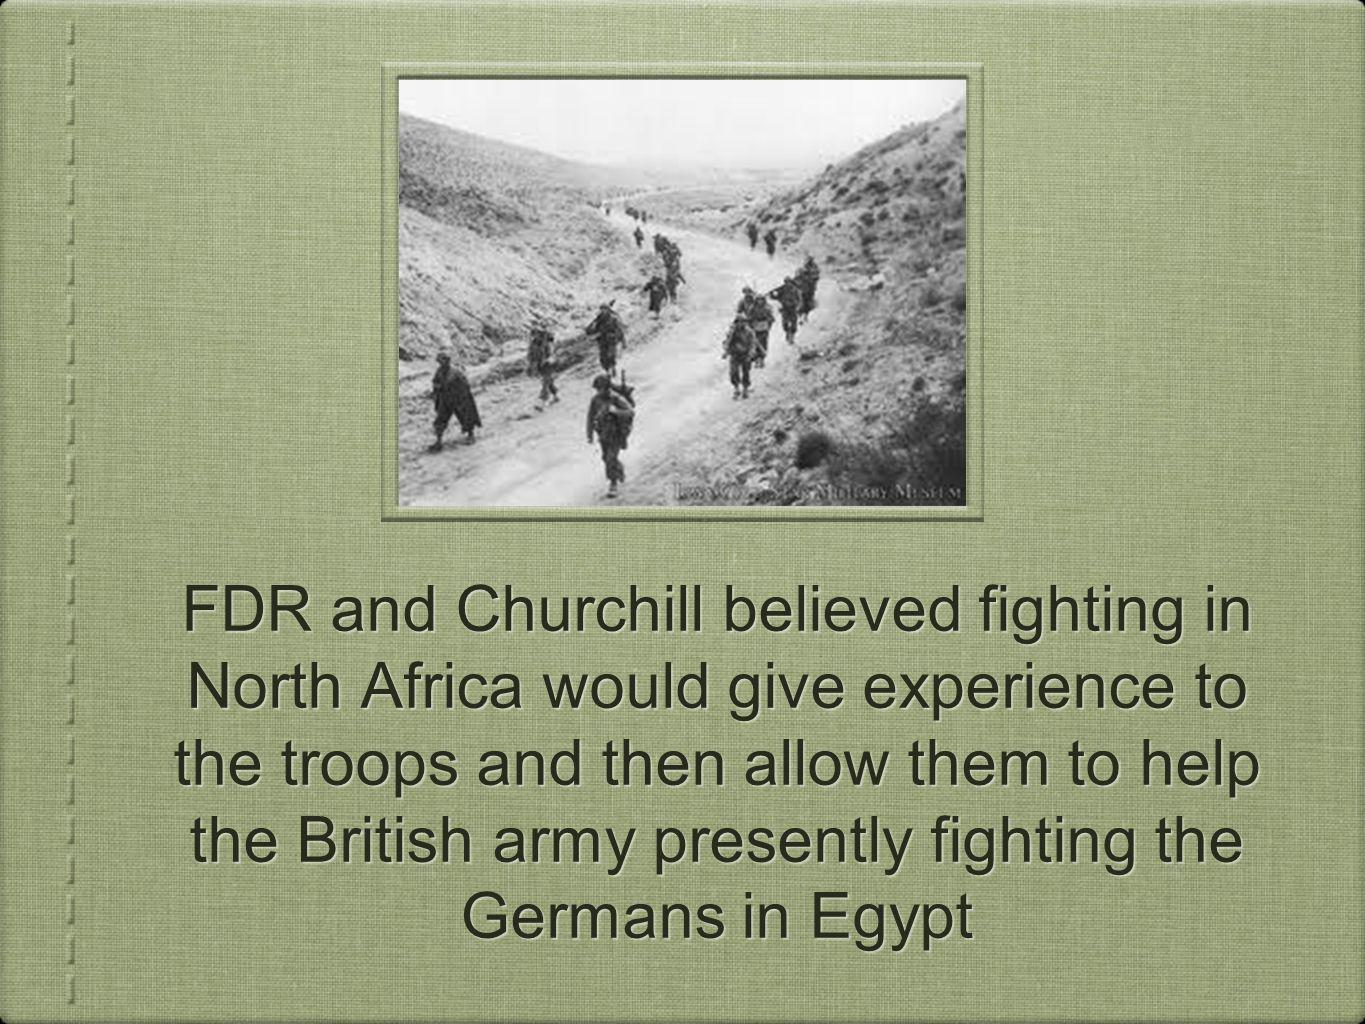 FDR and Churchill believed fighting in North Africa would give experience to the troops and then allow them to help the British army presently fighting the Germans in Egypt